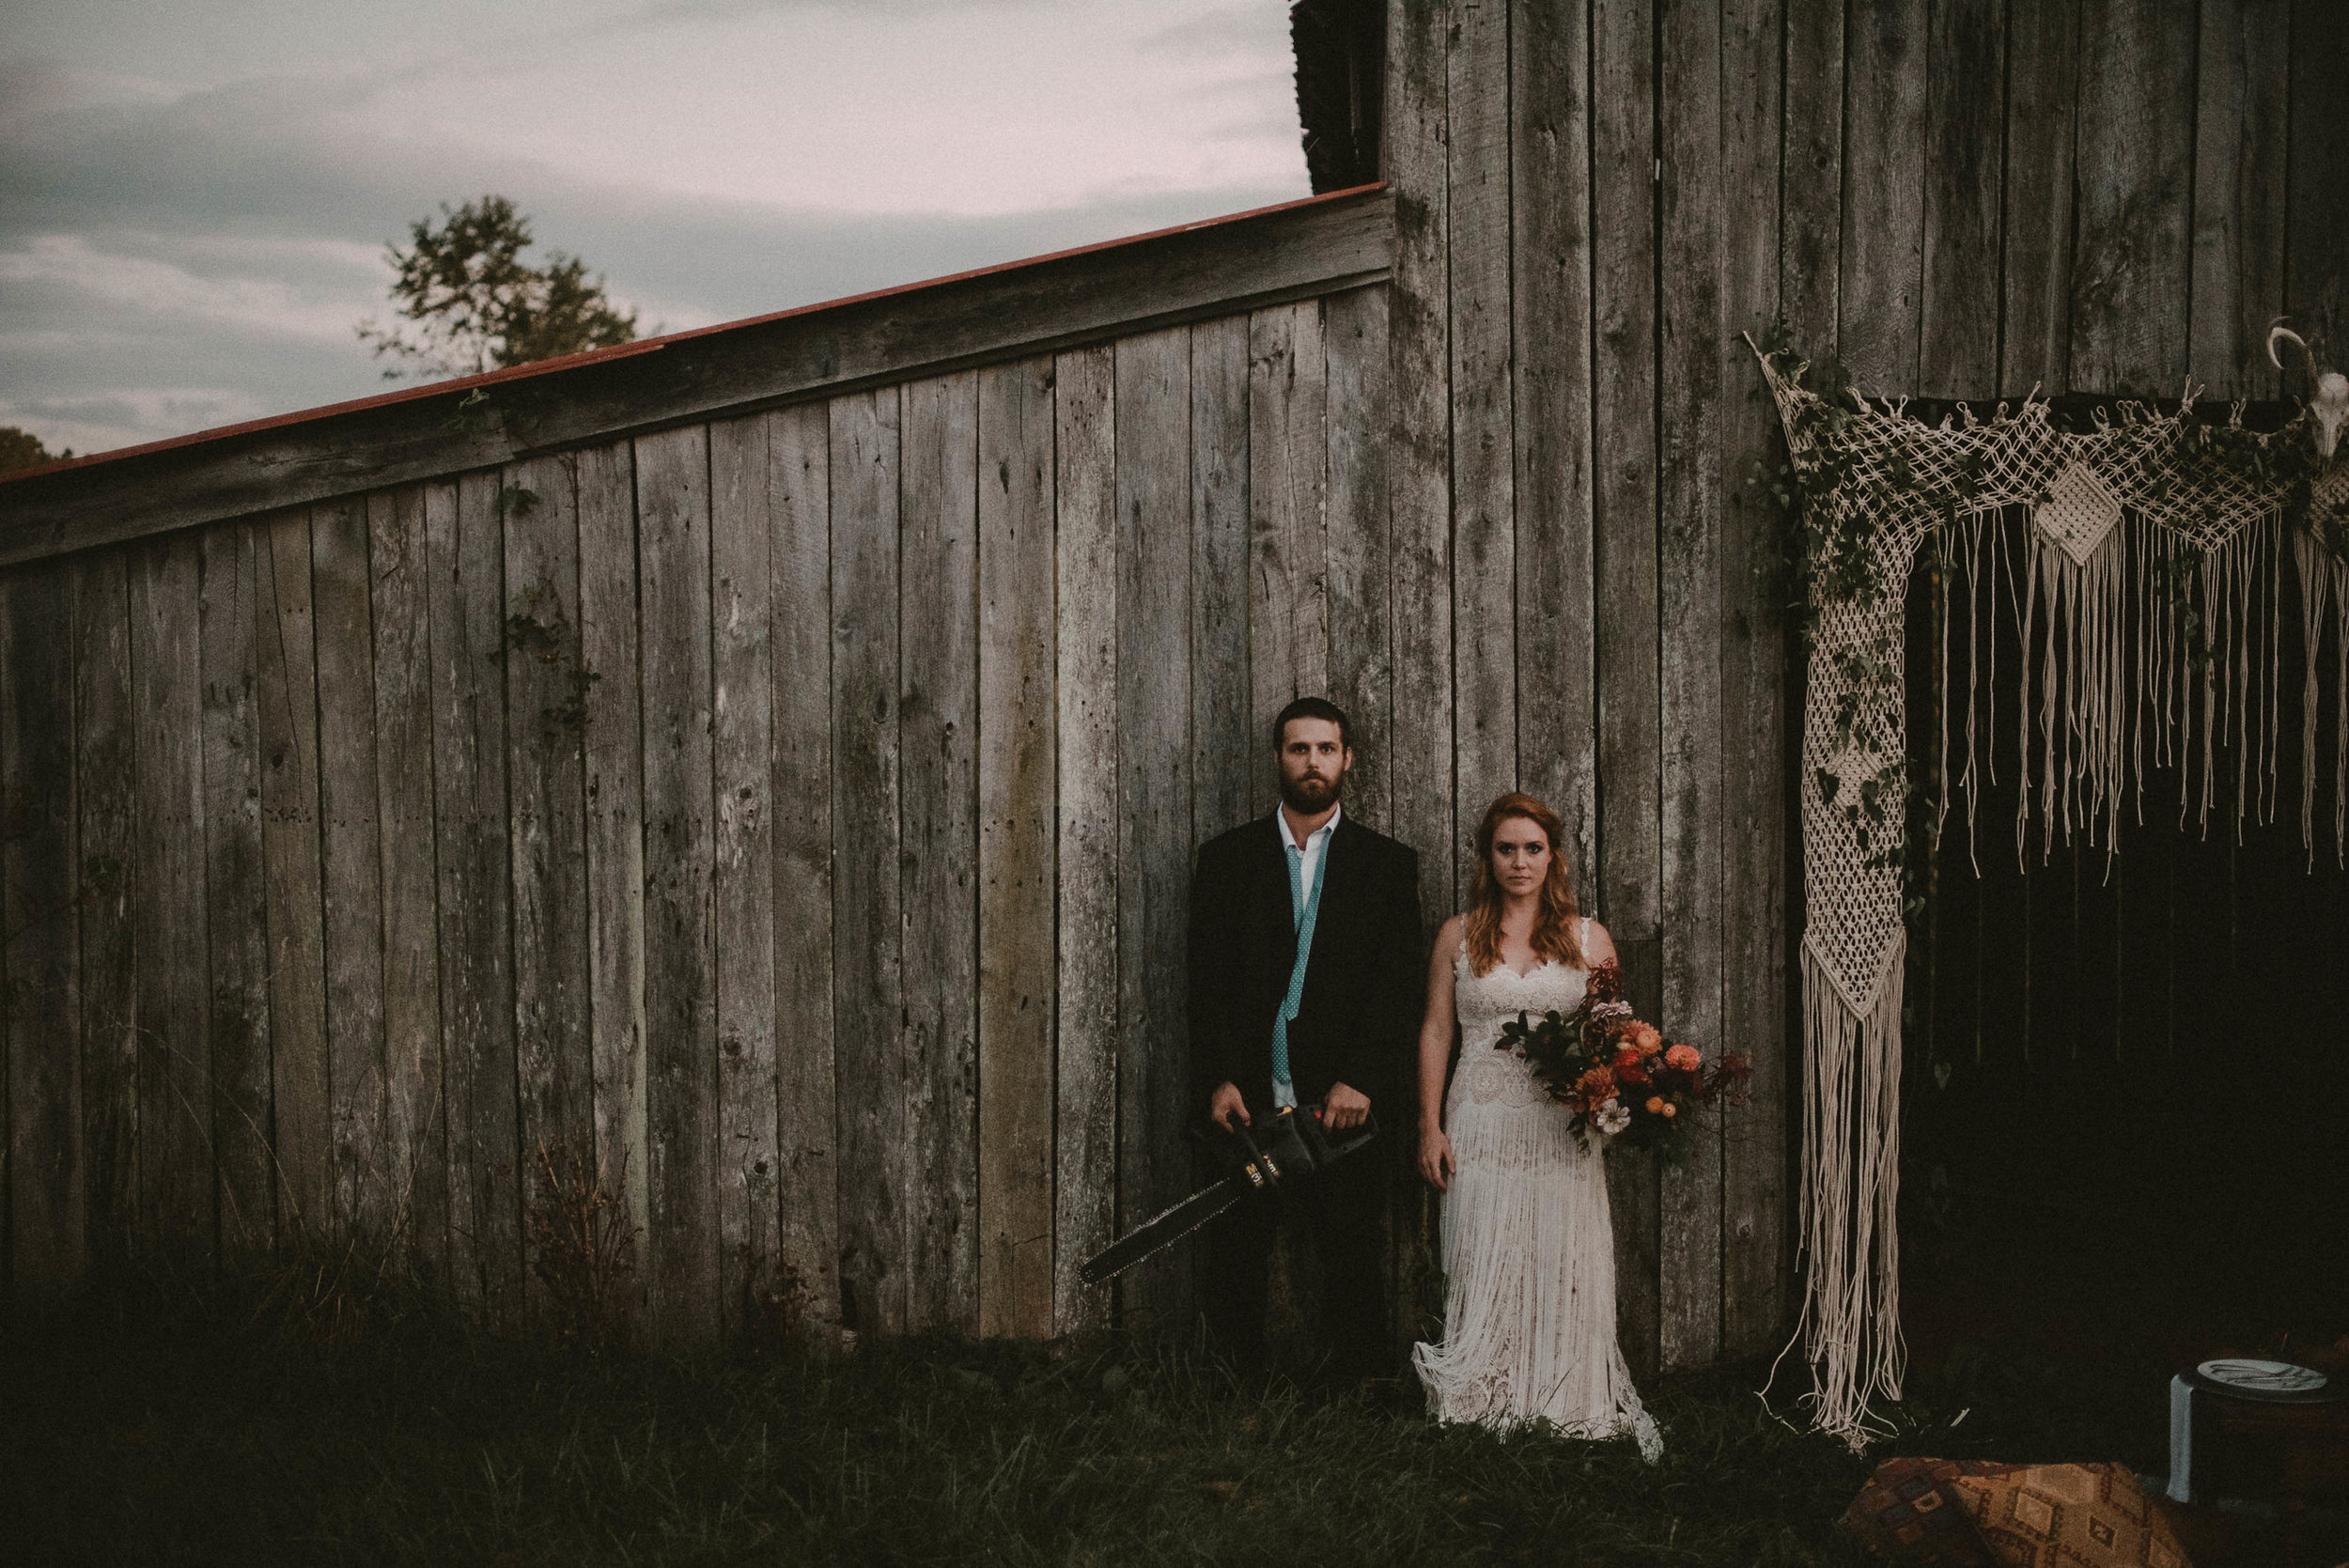 Bride and groom against old barn